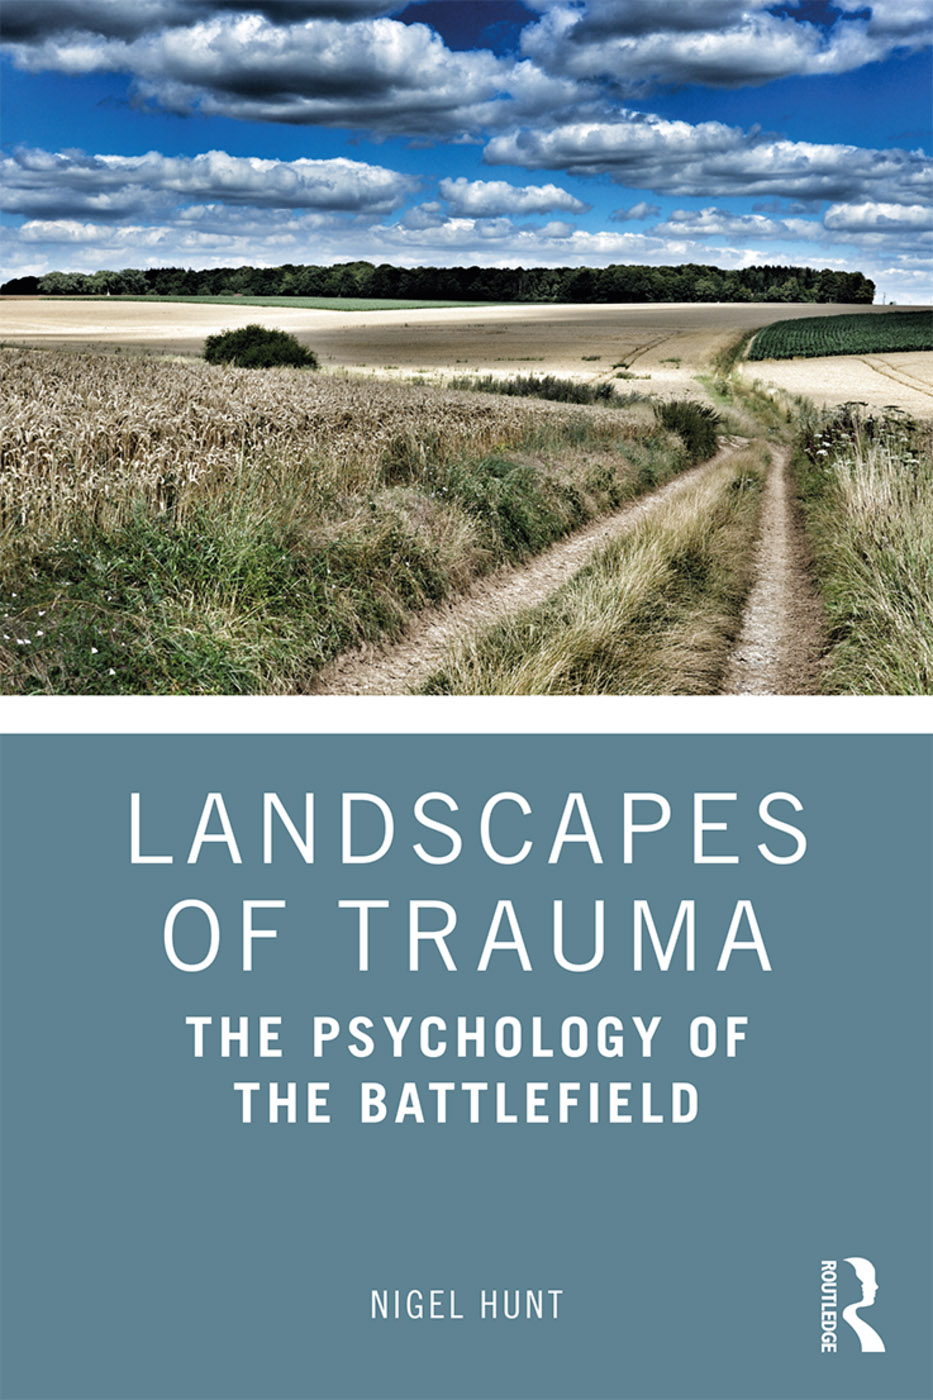 Landscapes of Trauma: The Psychology of the Battlefield book cover